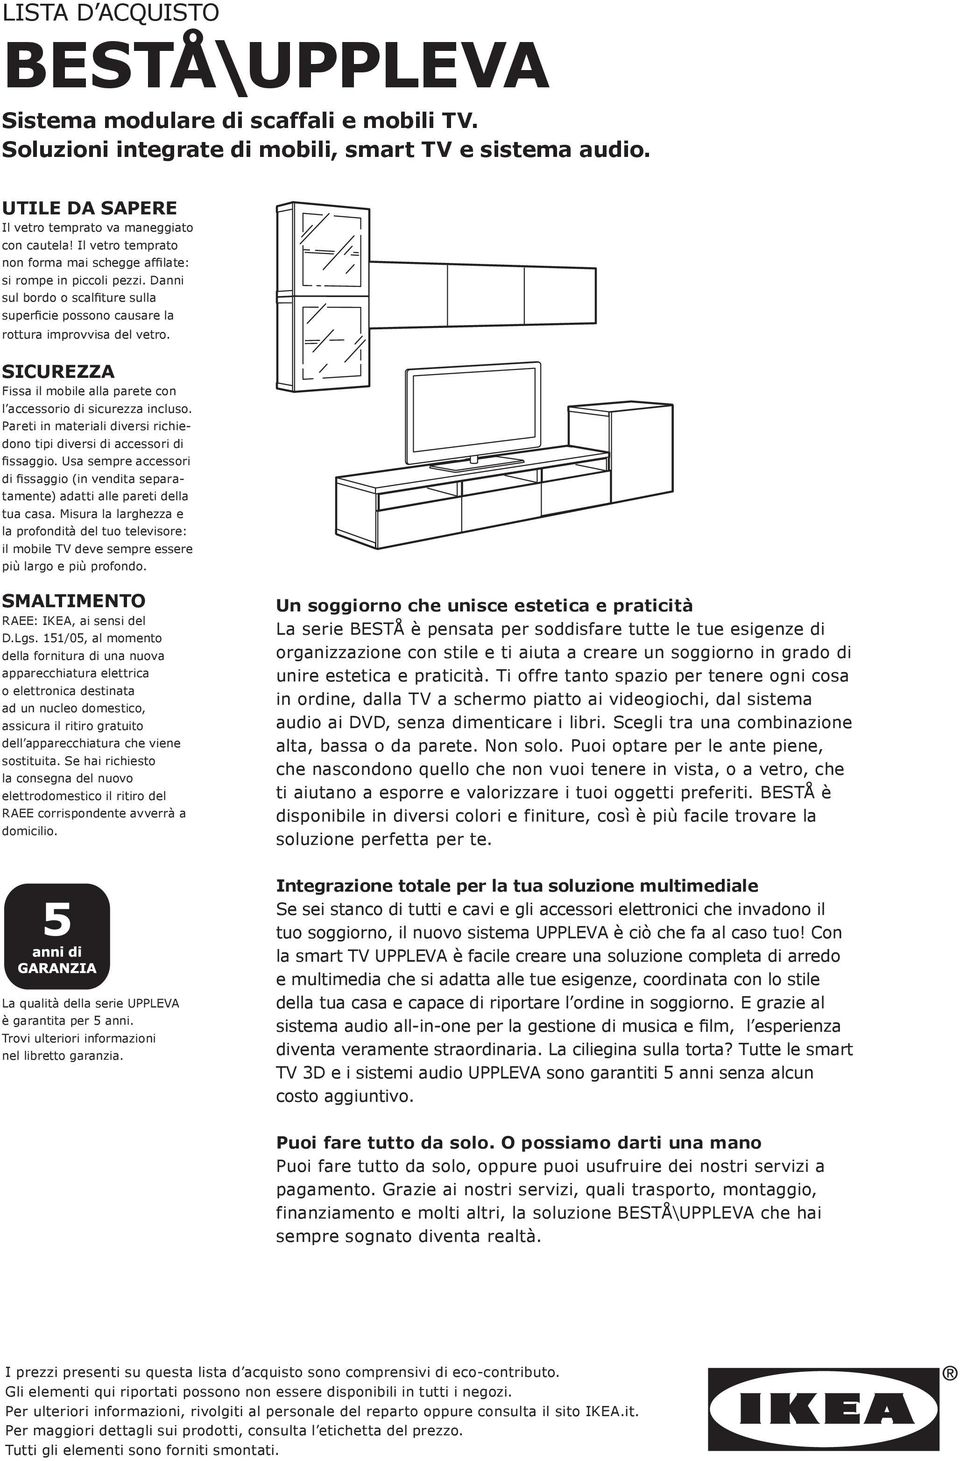 Pannello Porta Tv Ikea Framsta.Lista D Acquisto Besta Uppleva Pdf Download Gratuito